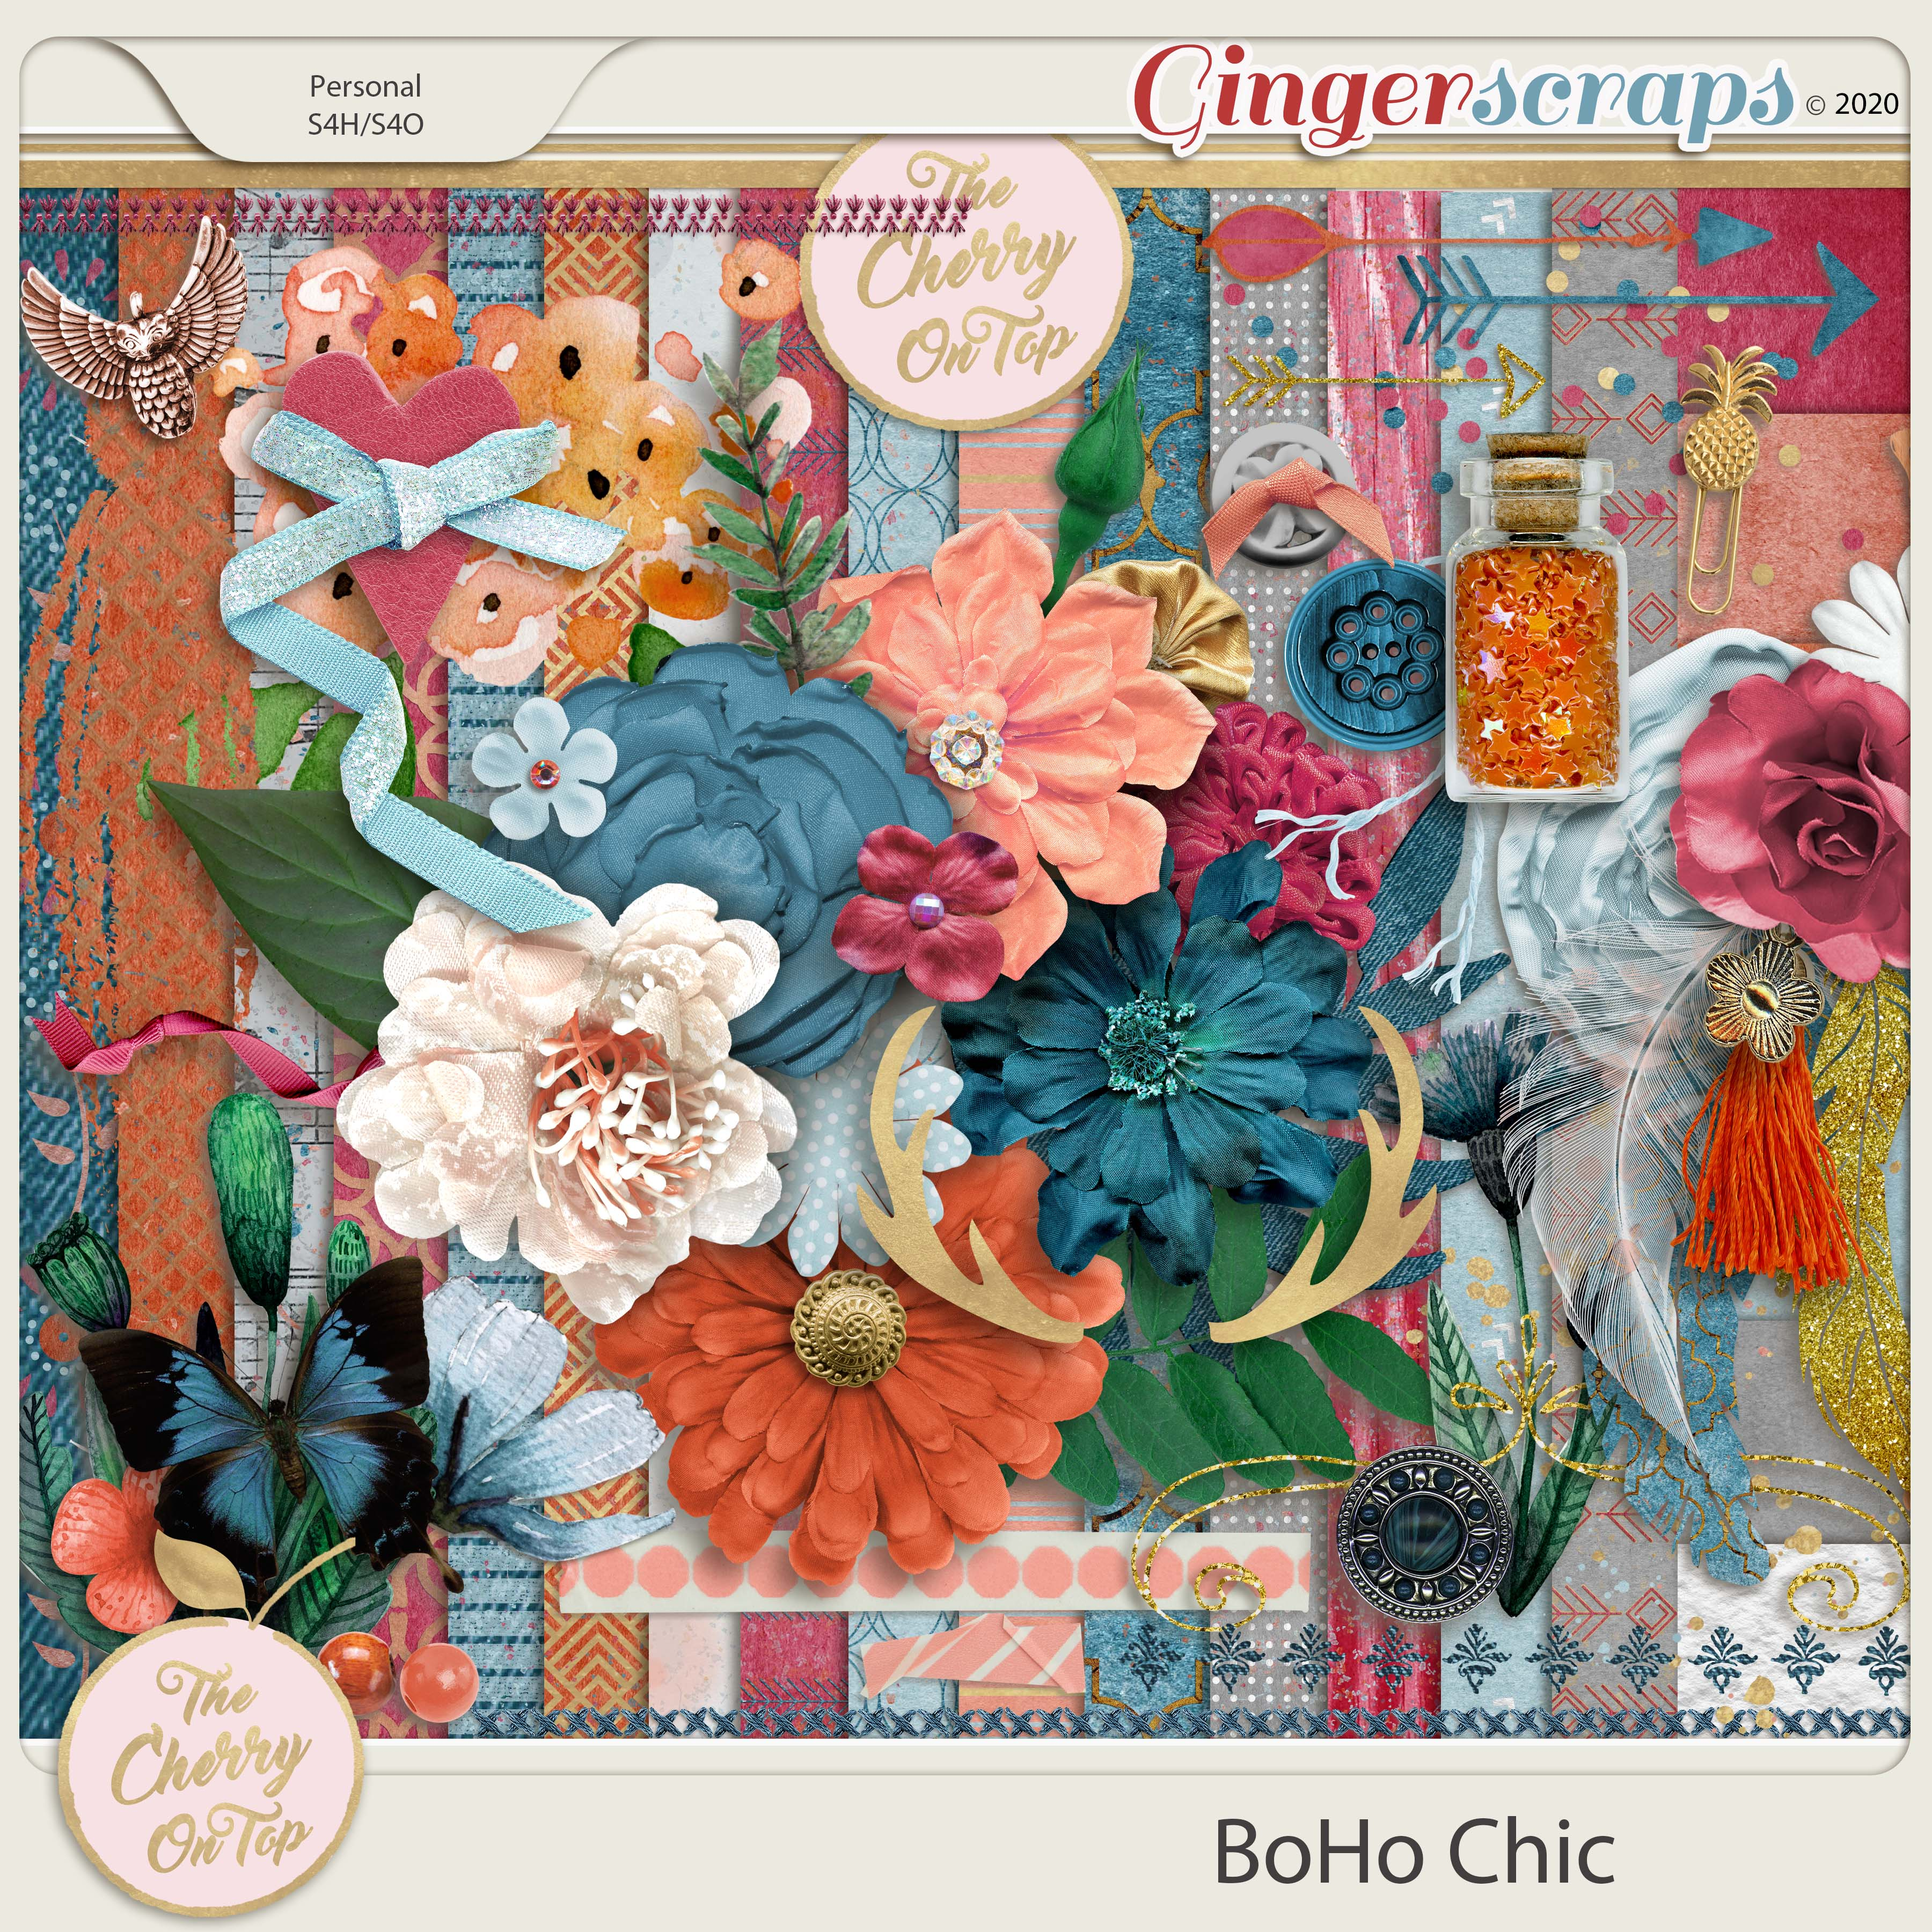 The Cherry On Top:  BoHo Chic